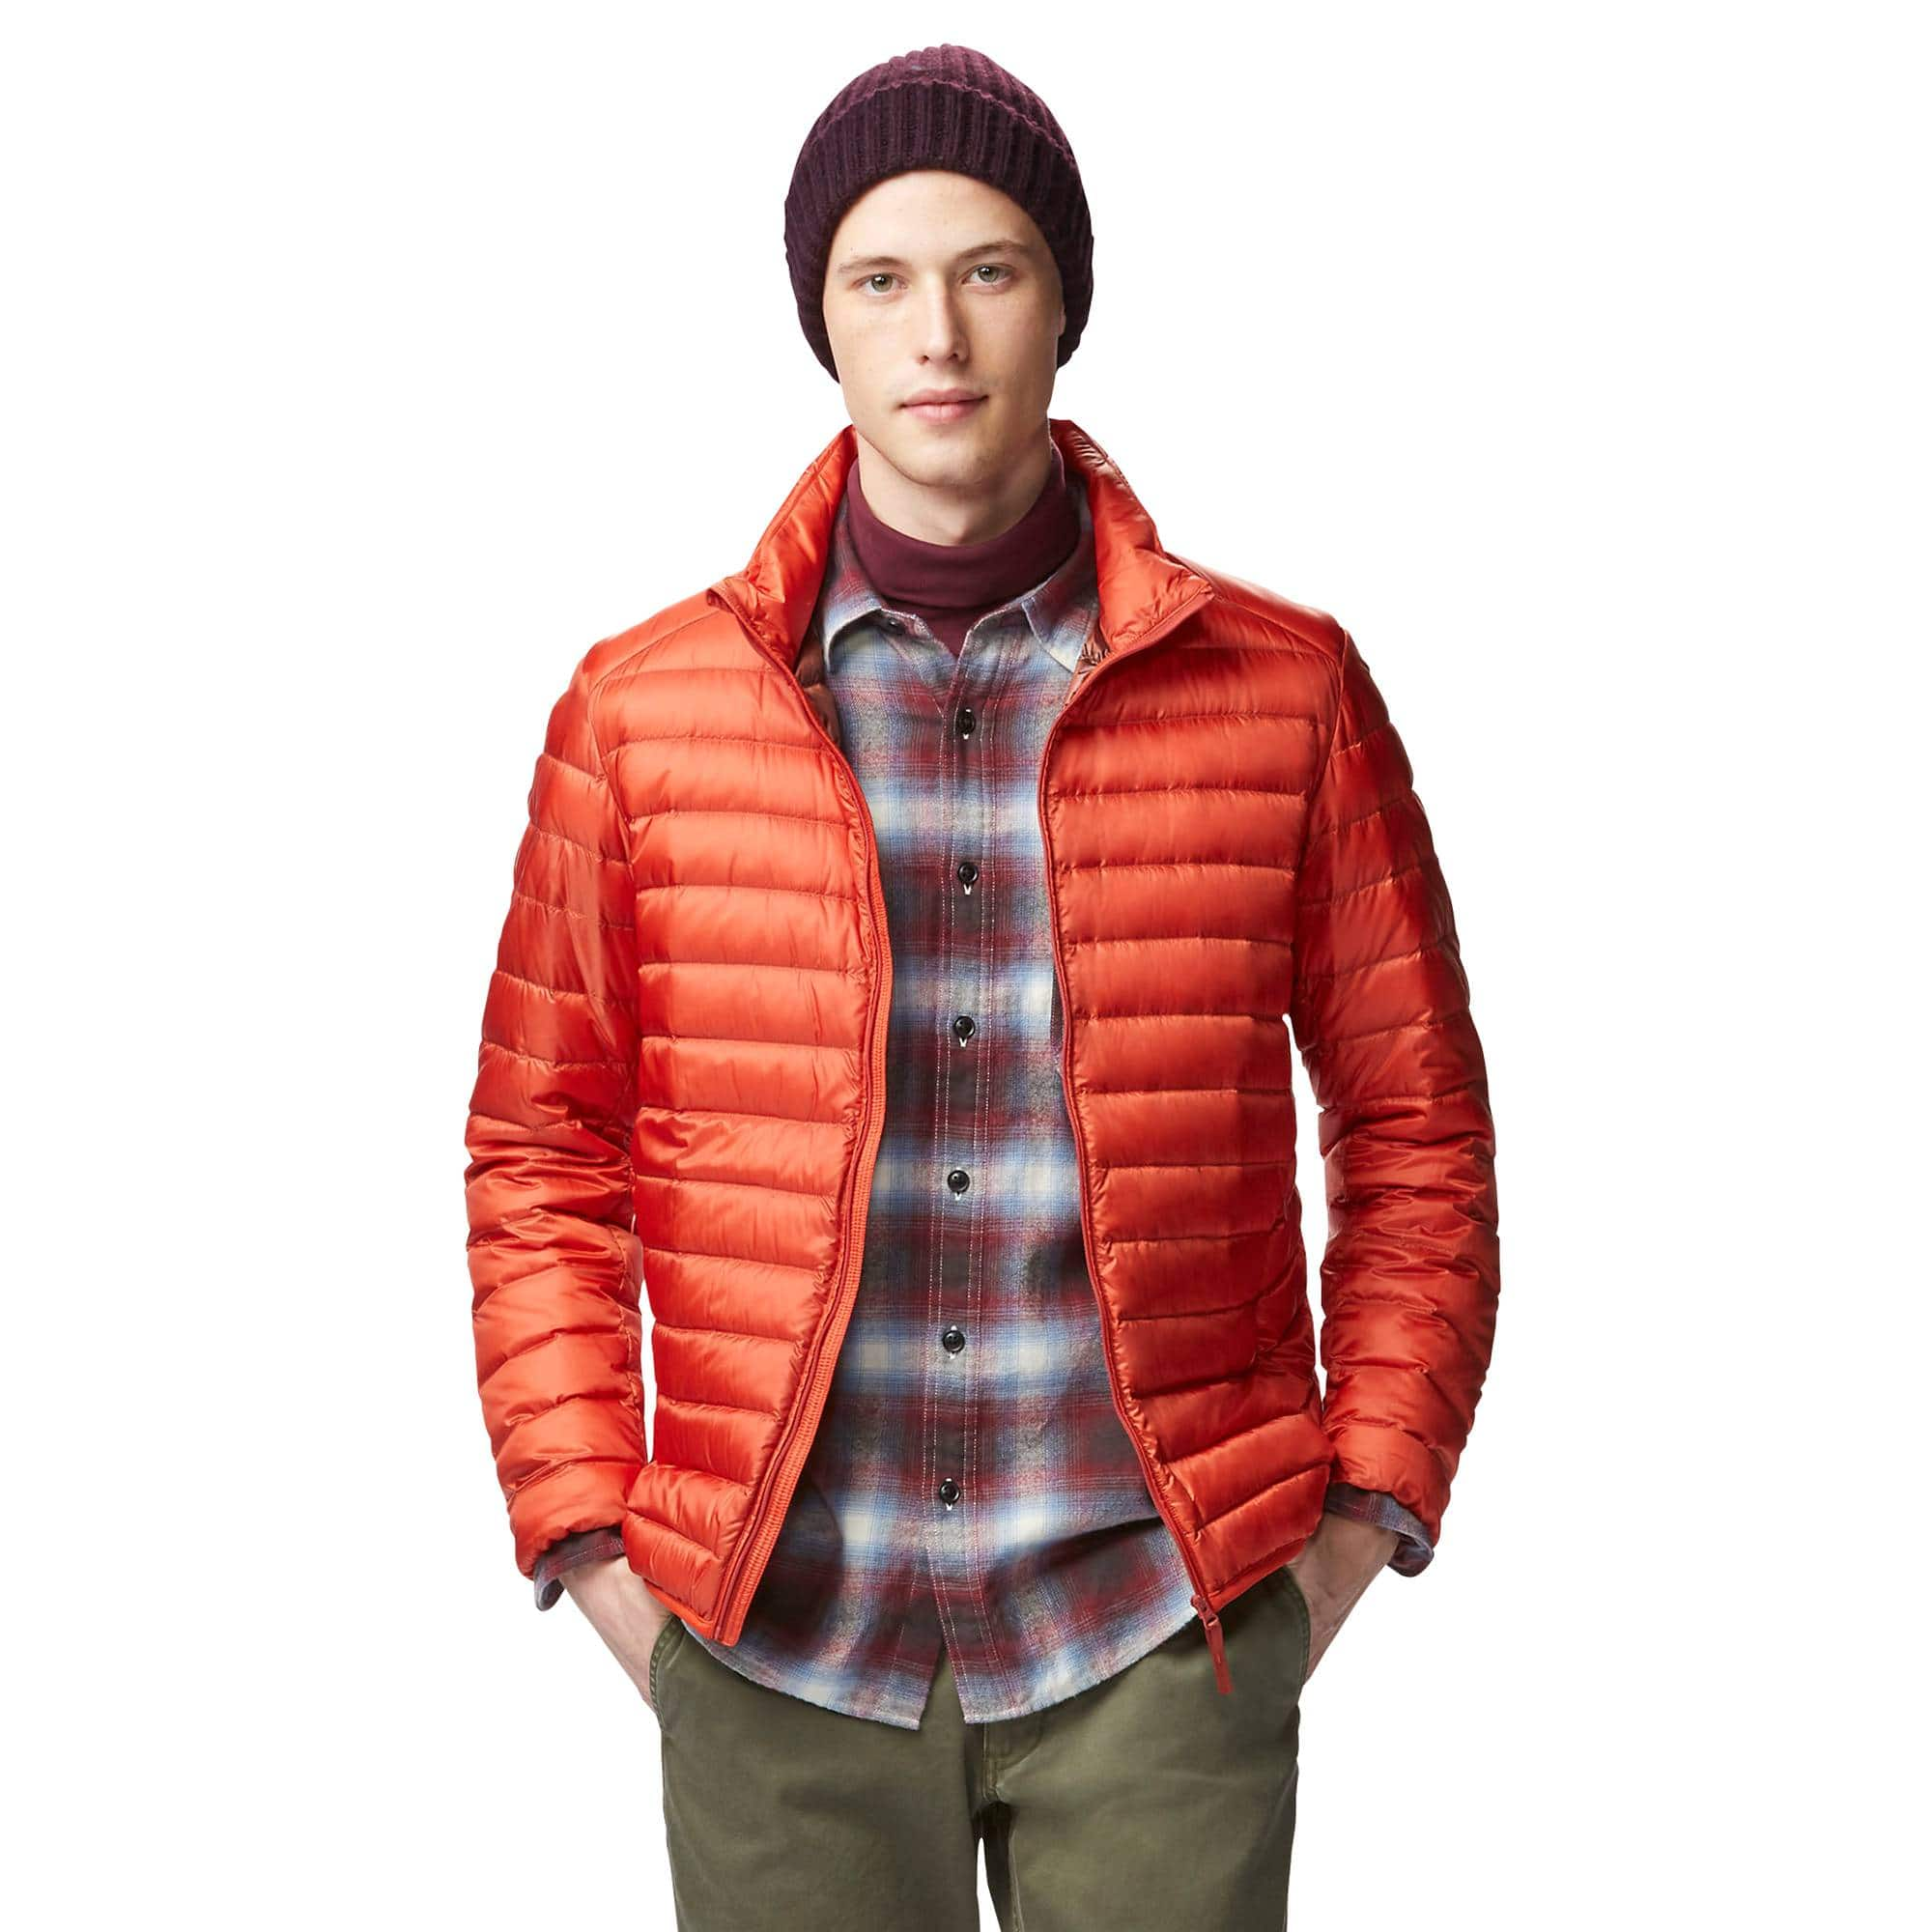 https://www.uniqlo.com/us/en/men-ultra-light-down-jacket-156558.html $9.9